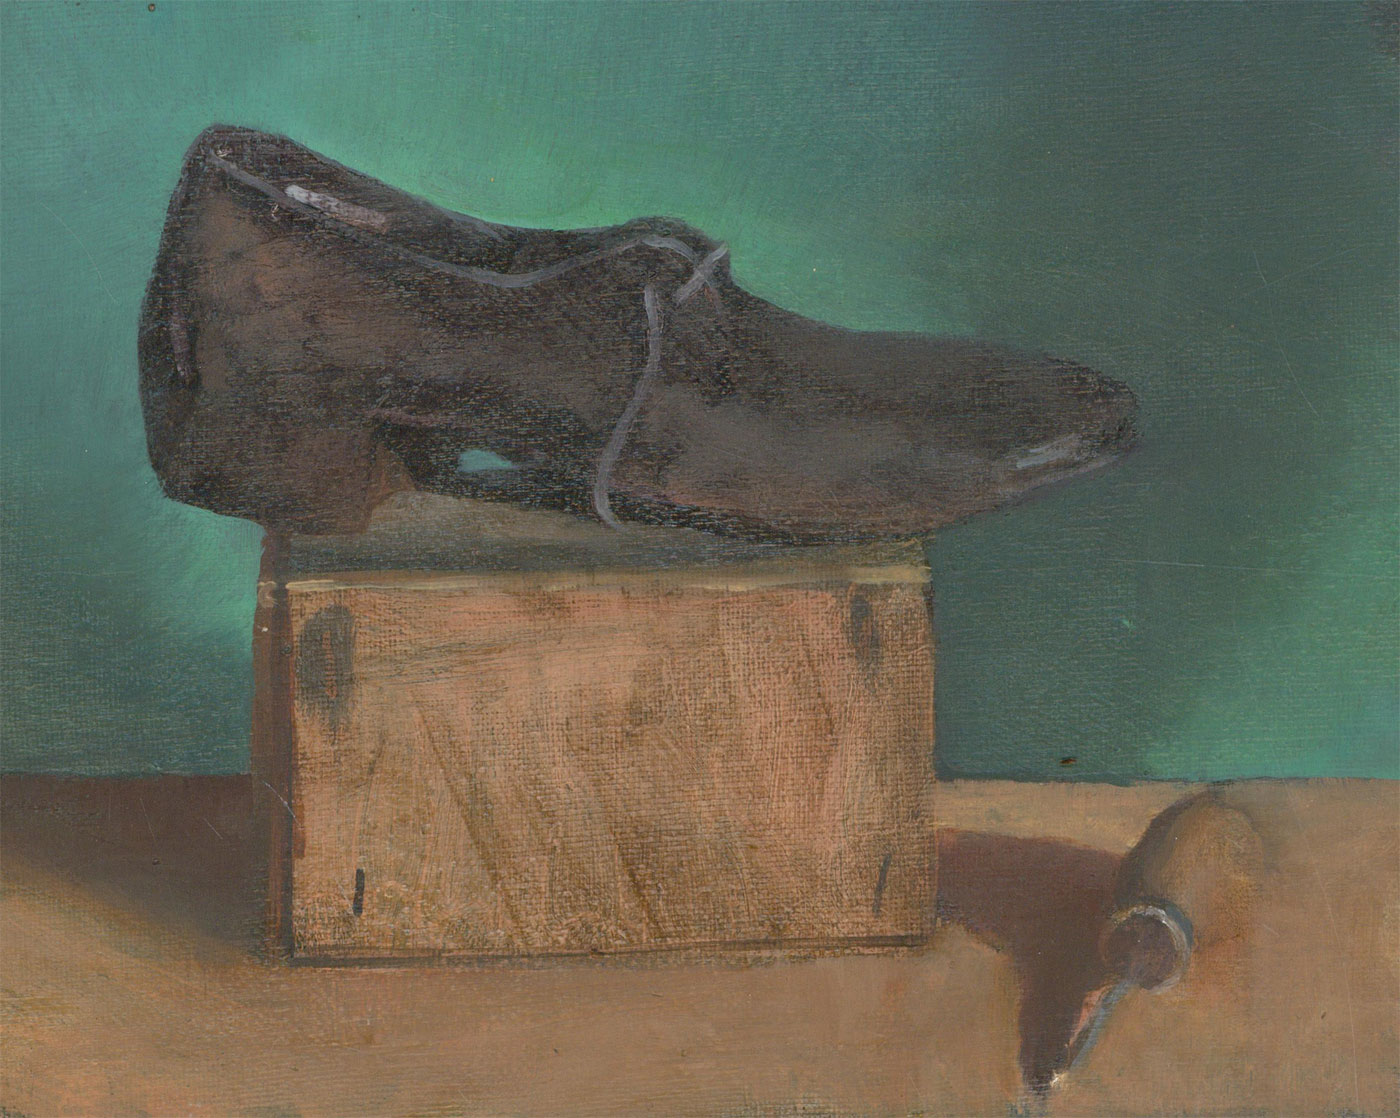 Julian Gordon Mitchell (b. 1968) - Contemporary Oil, Study of a Shoe, 'At the Cobblers'